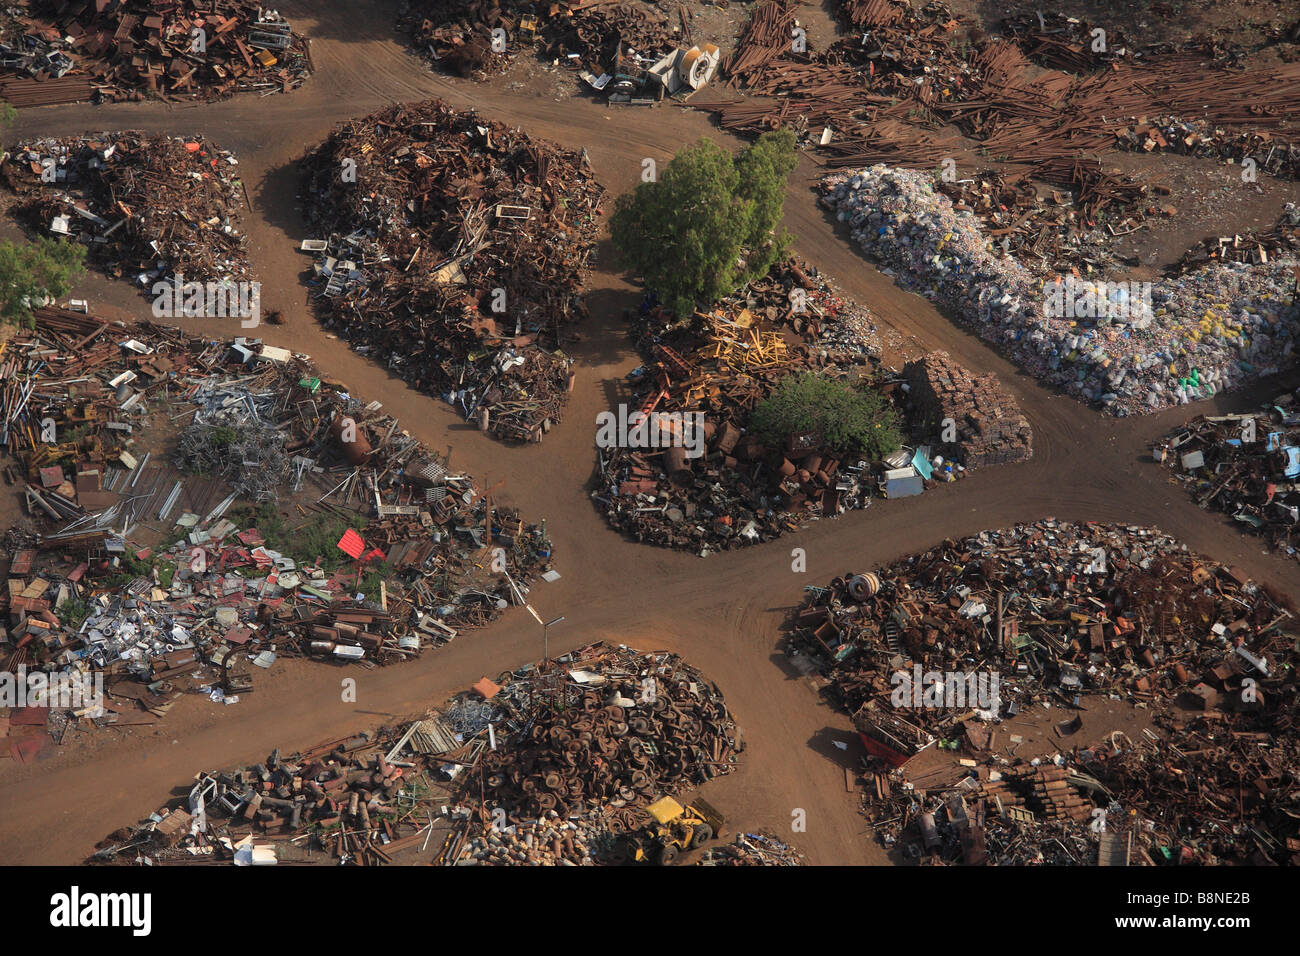 Aerial view of a junk yard with large piles of scrap metal - Stock Image